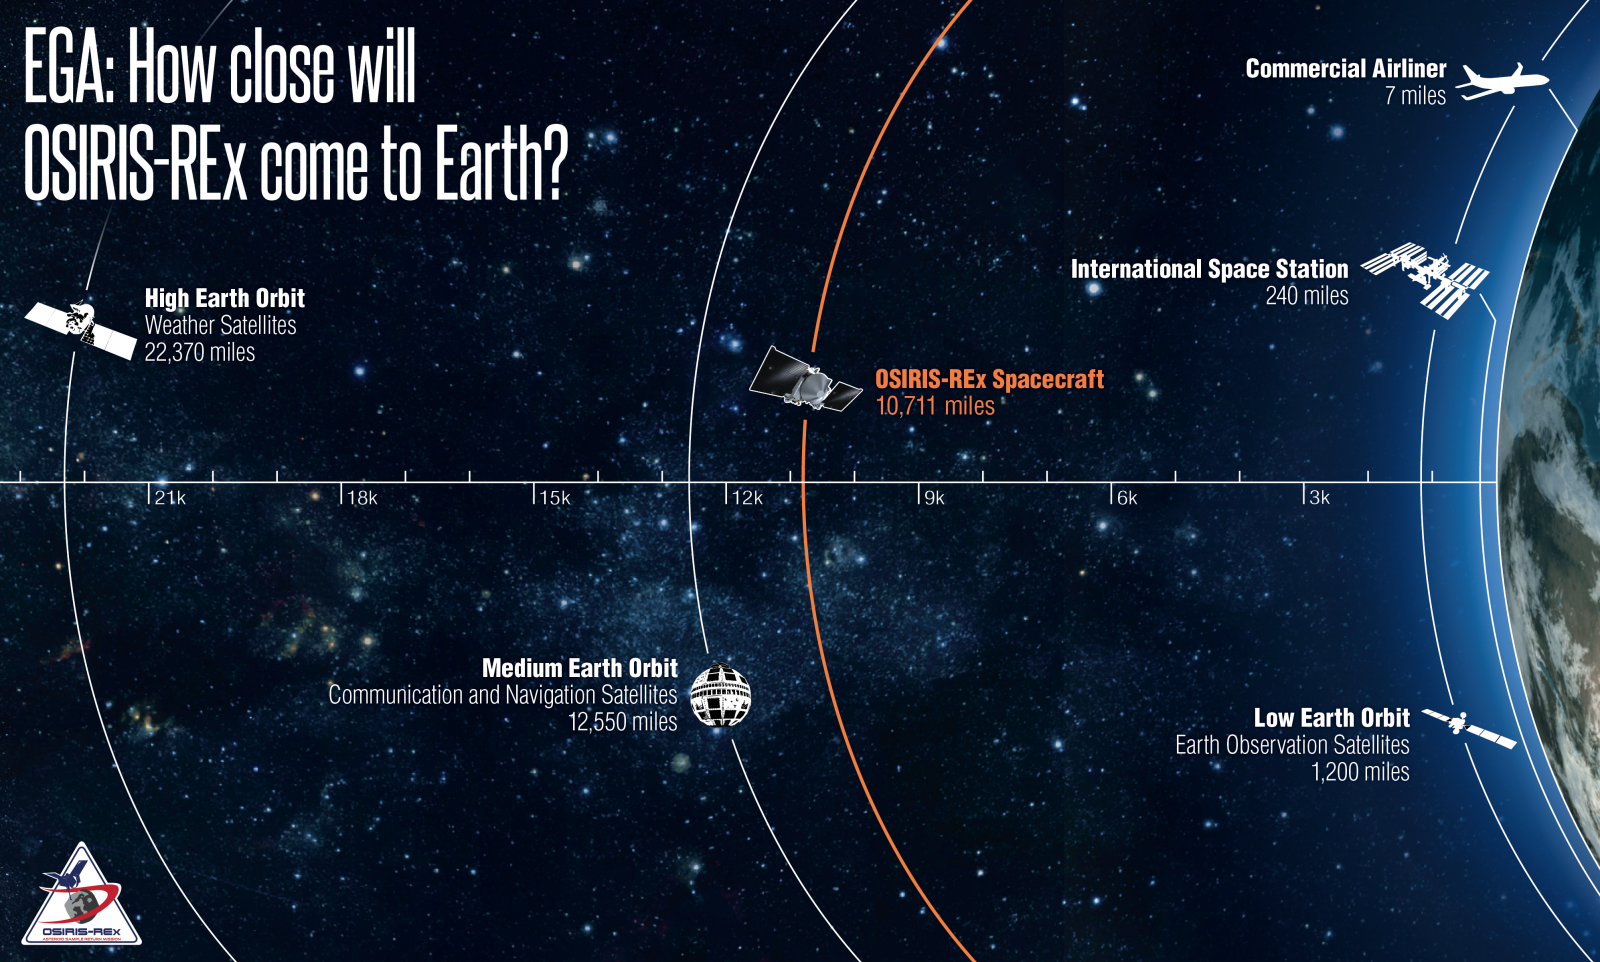 Infographic showing how close OSIRIS-REx will come to Earth during Friday's flyby. Image Credit: NASA